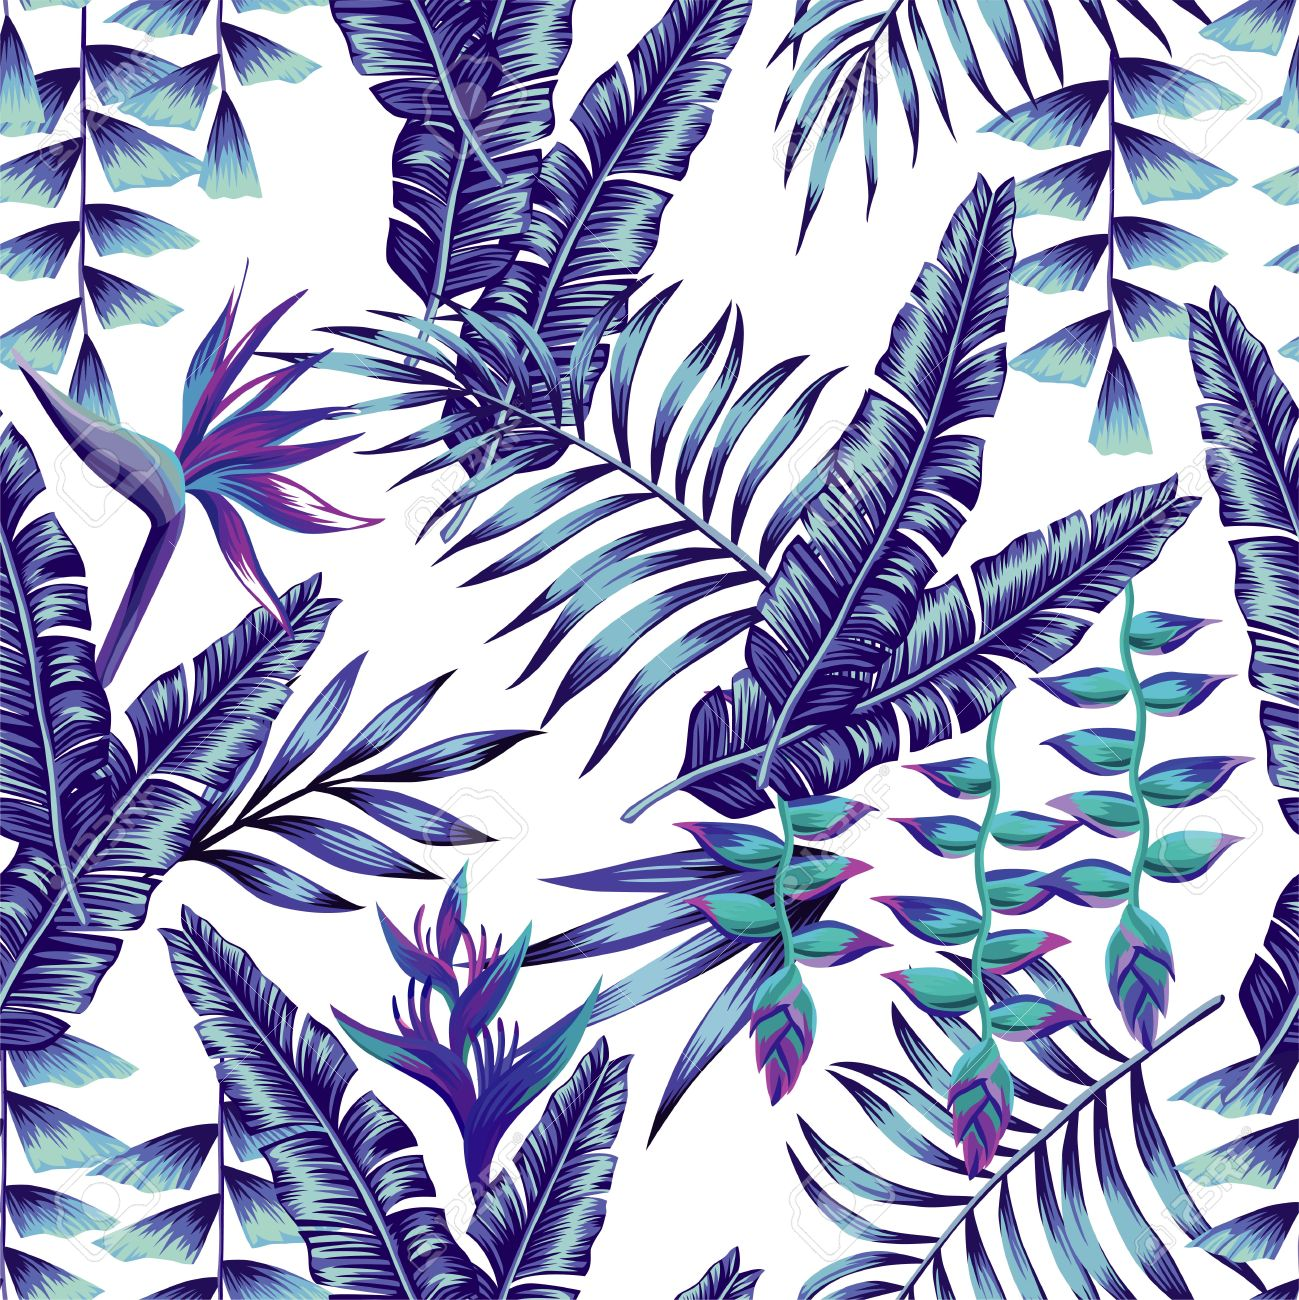 Tropical Flower Seamless Pattern Print Wallpaper Summer Plant A Banana Palm Leaves In Trendy Blue Style